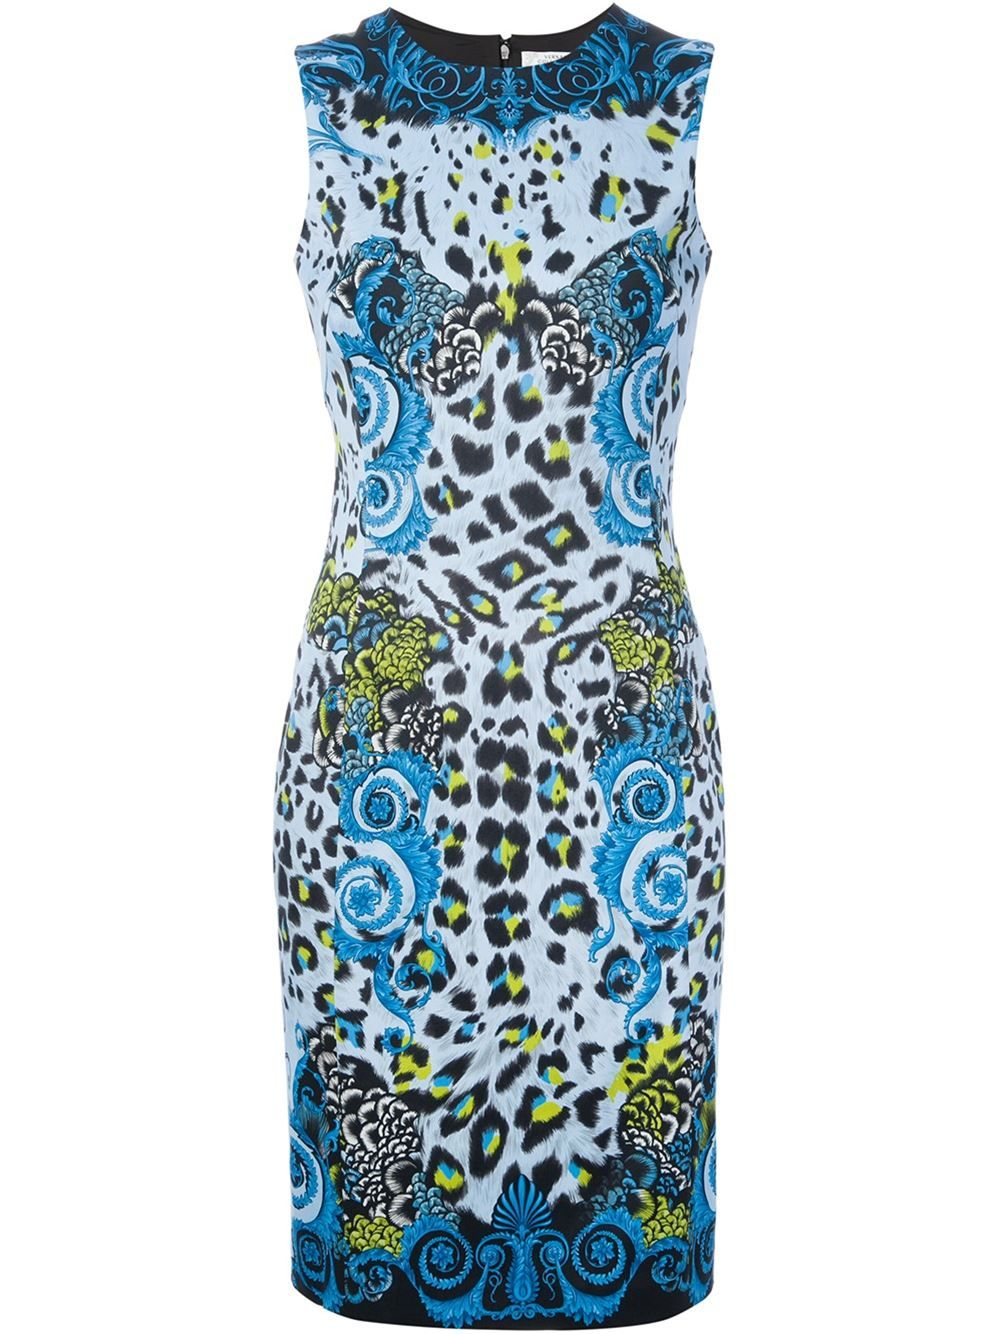 Versace Leopard Print Dress in Multicolor (multicolour) | "|1000|1334|?|69551794a97231c7446638cf909130a3|False|UNLIKELY|0.32070231437683105